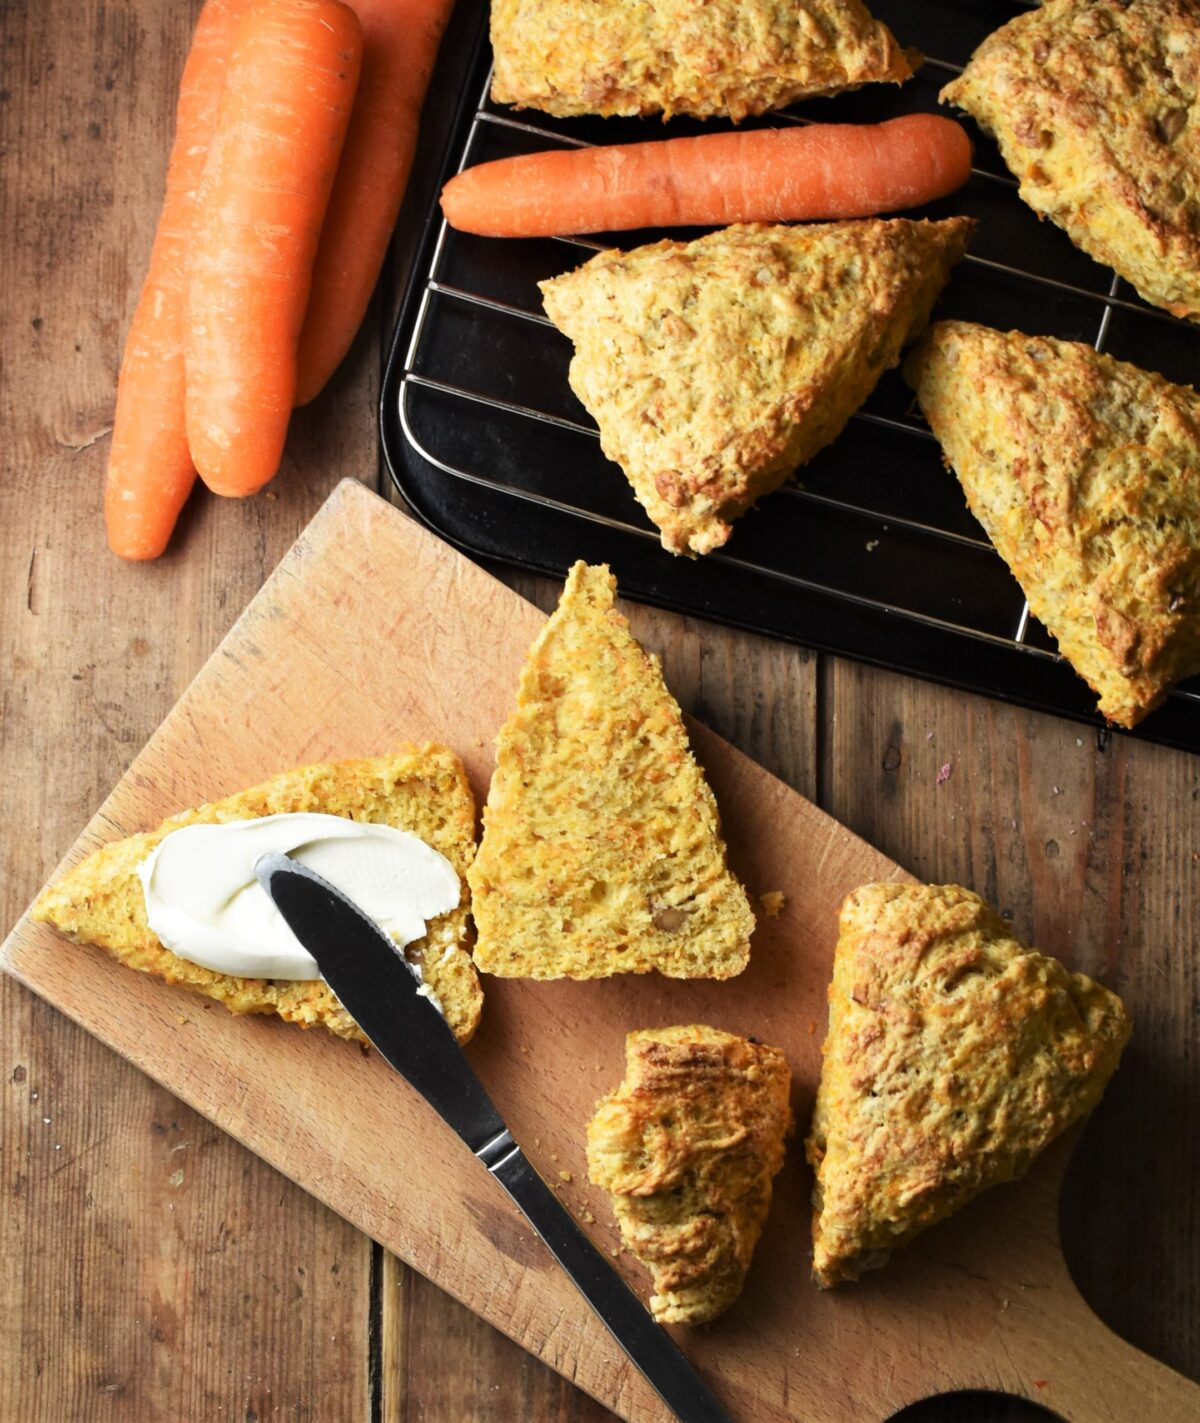 Carrot scones on top of wooden board, 1 with cream cheese and knife on top, and scones with raw carrots on top of black tray.